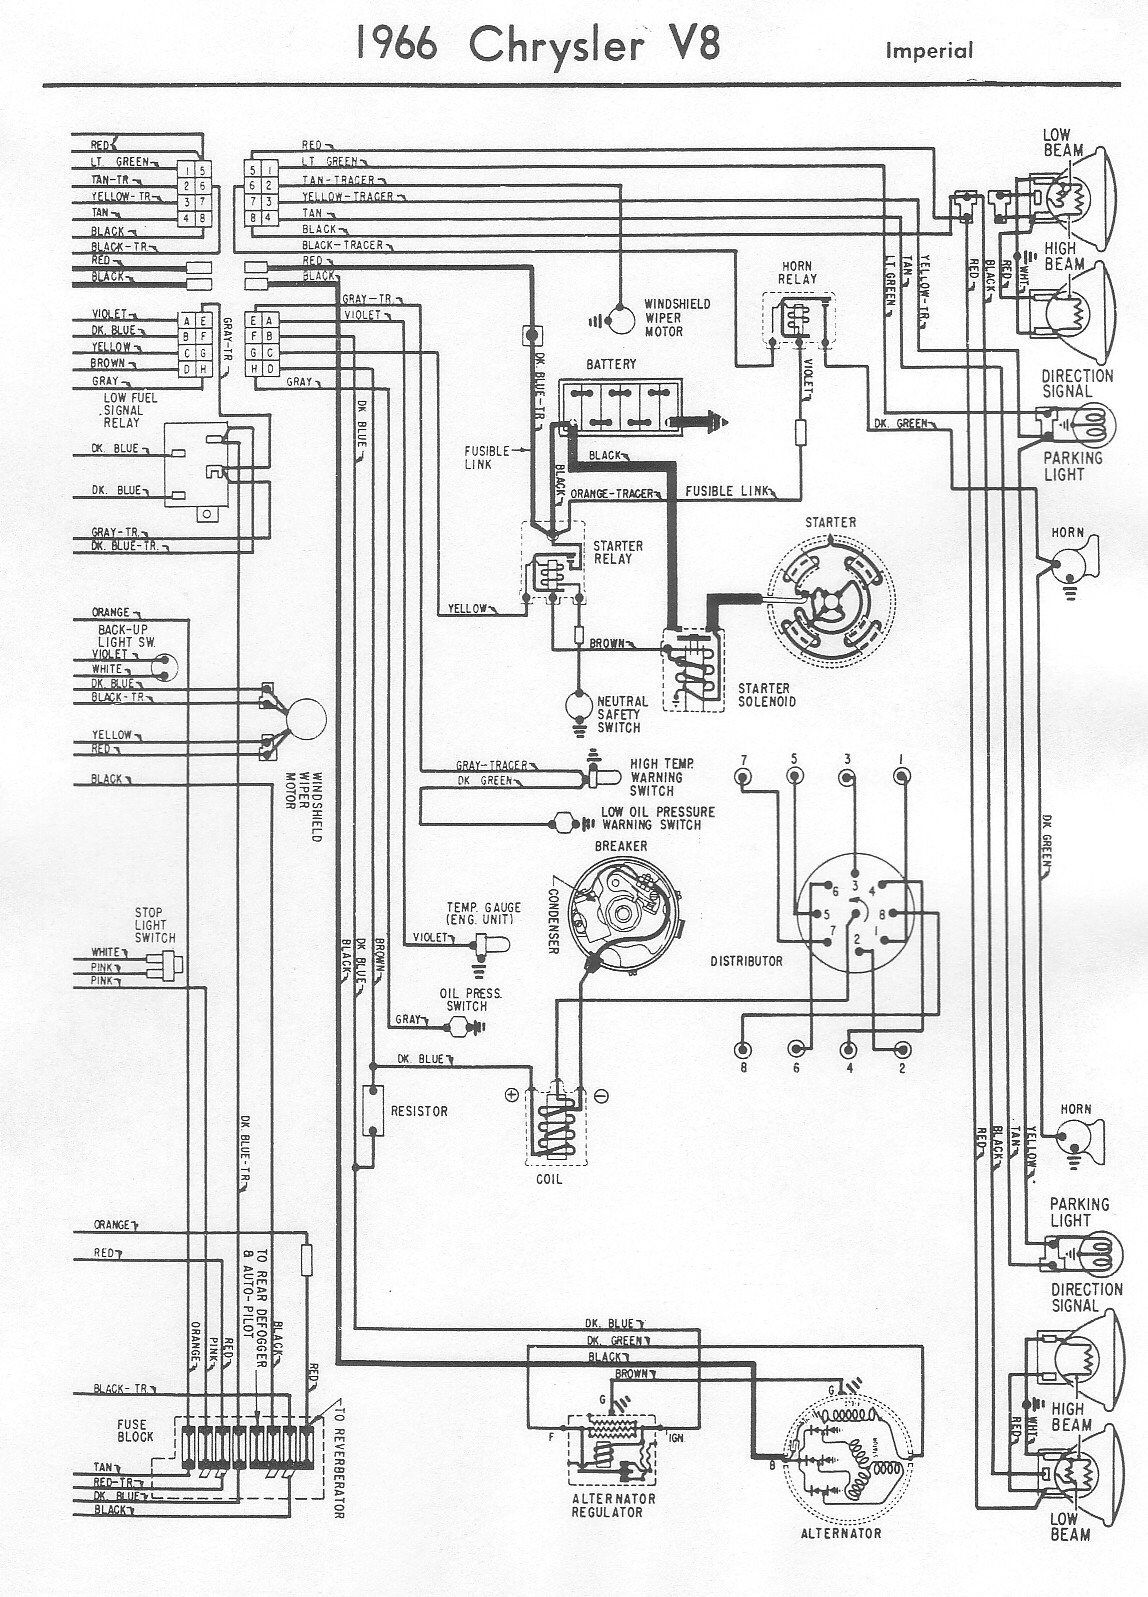 Outstanding Chrysler 300 Schematic Wiring Library Wiring Database Obenzyuccorg